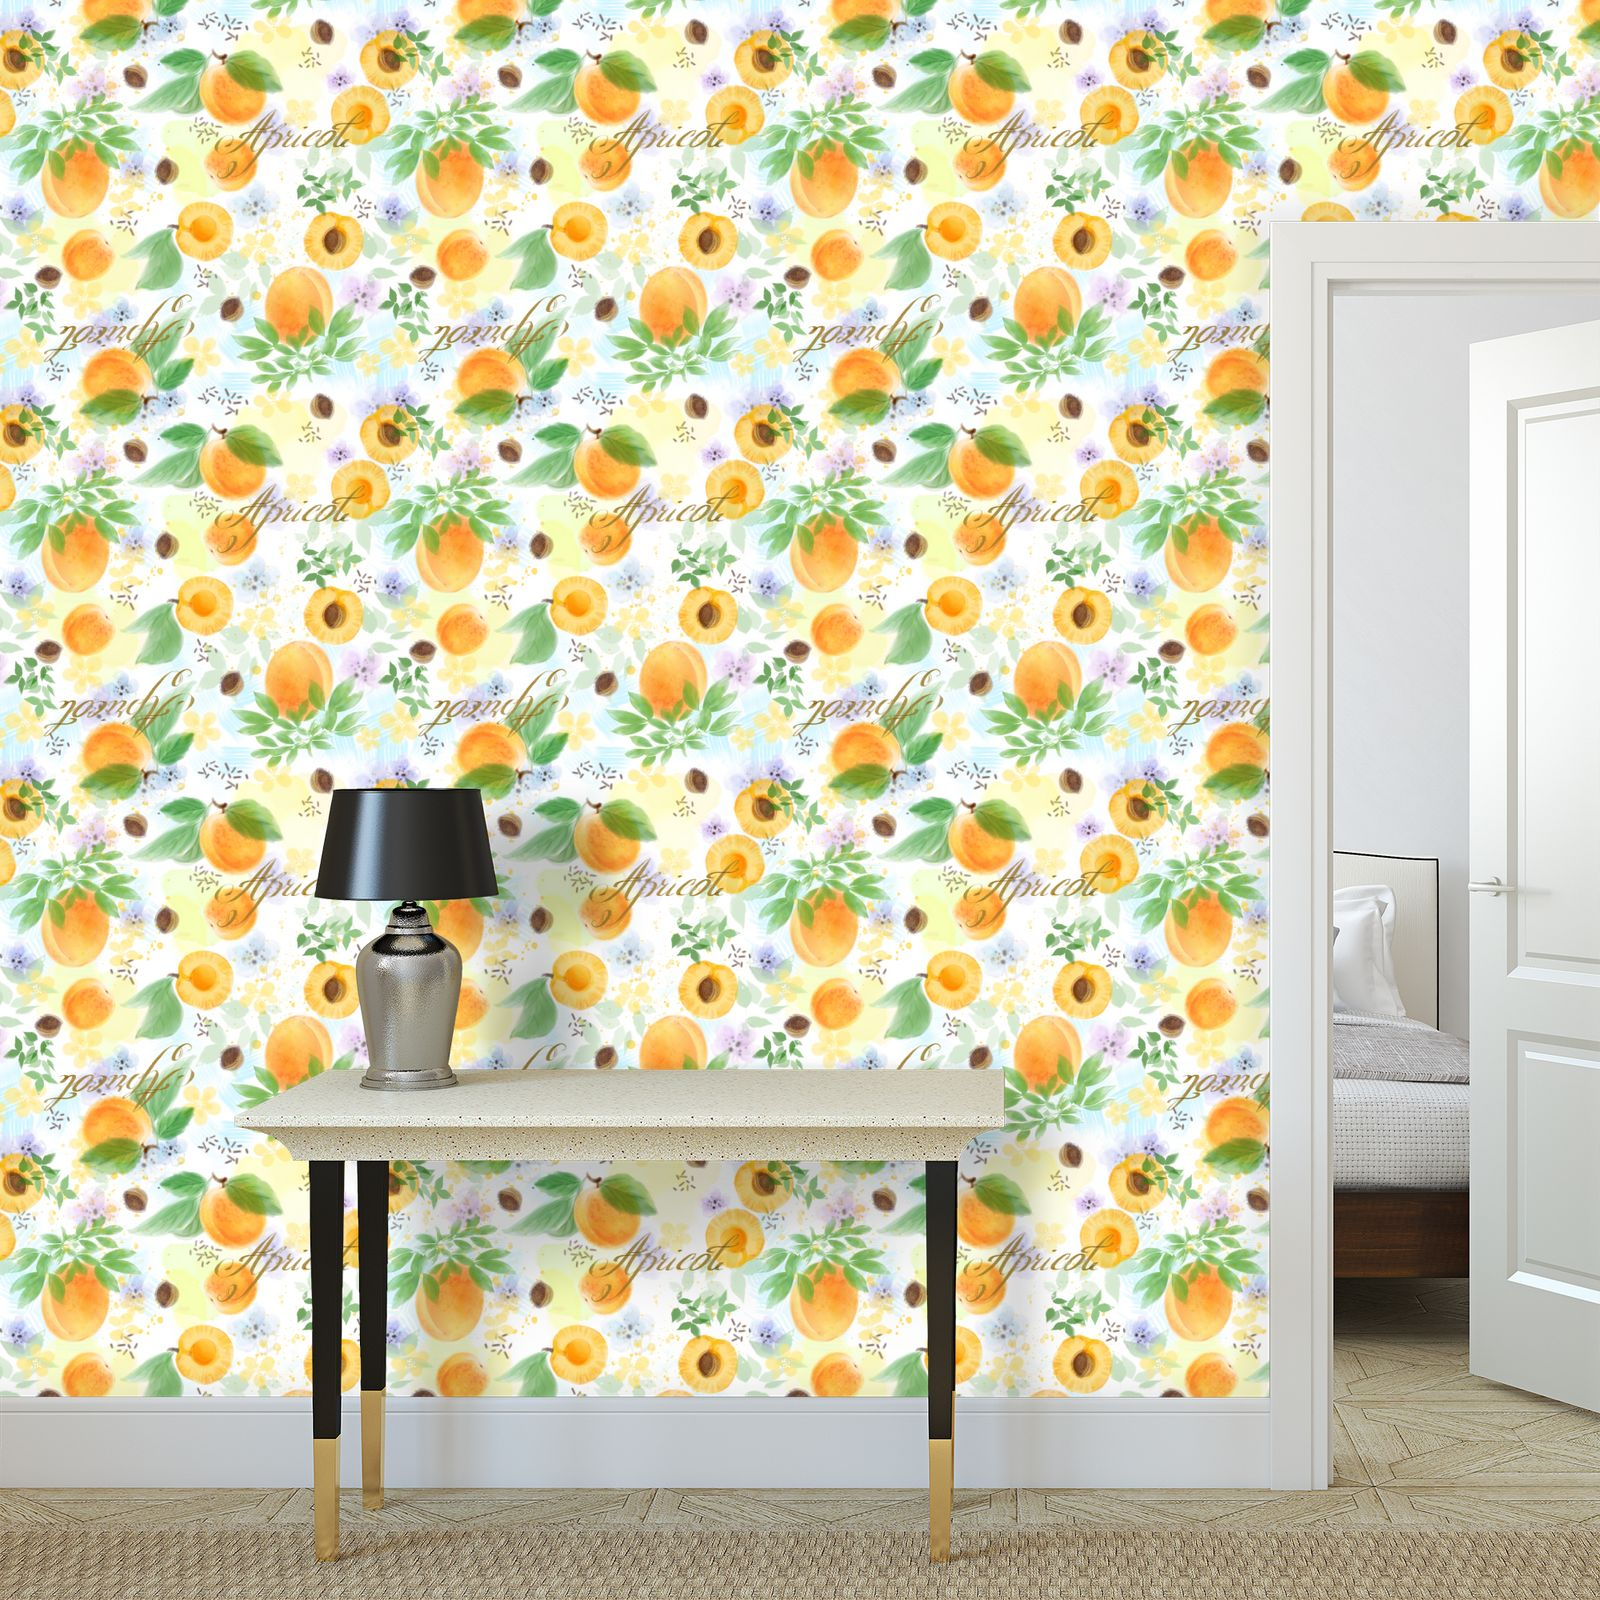 Little sun - Wallpaper Rolls - fruit design, apricots, sunny, orchard, yellow, bright, natural food, garden, hand-drawn floral, summer gift - design by Tiana Lofd